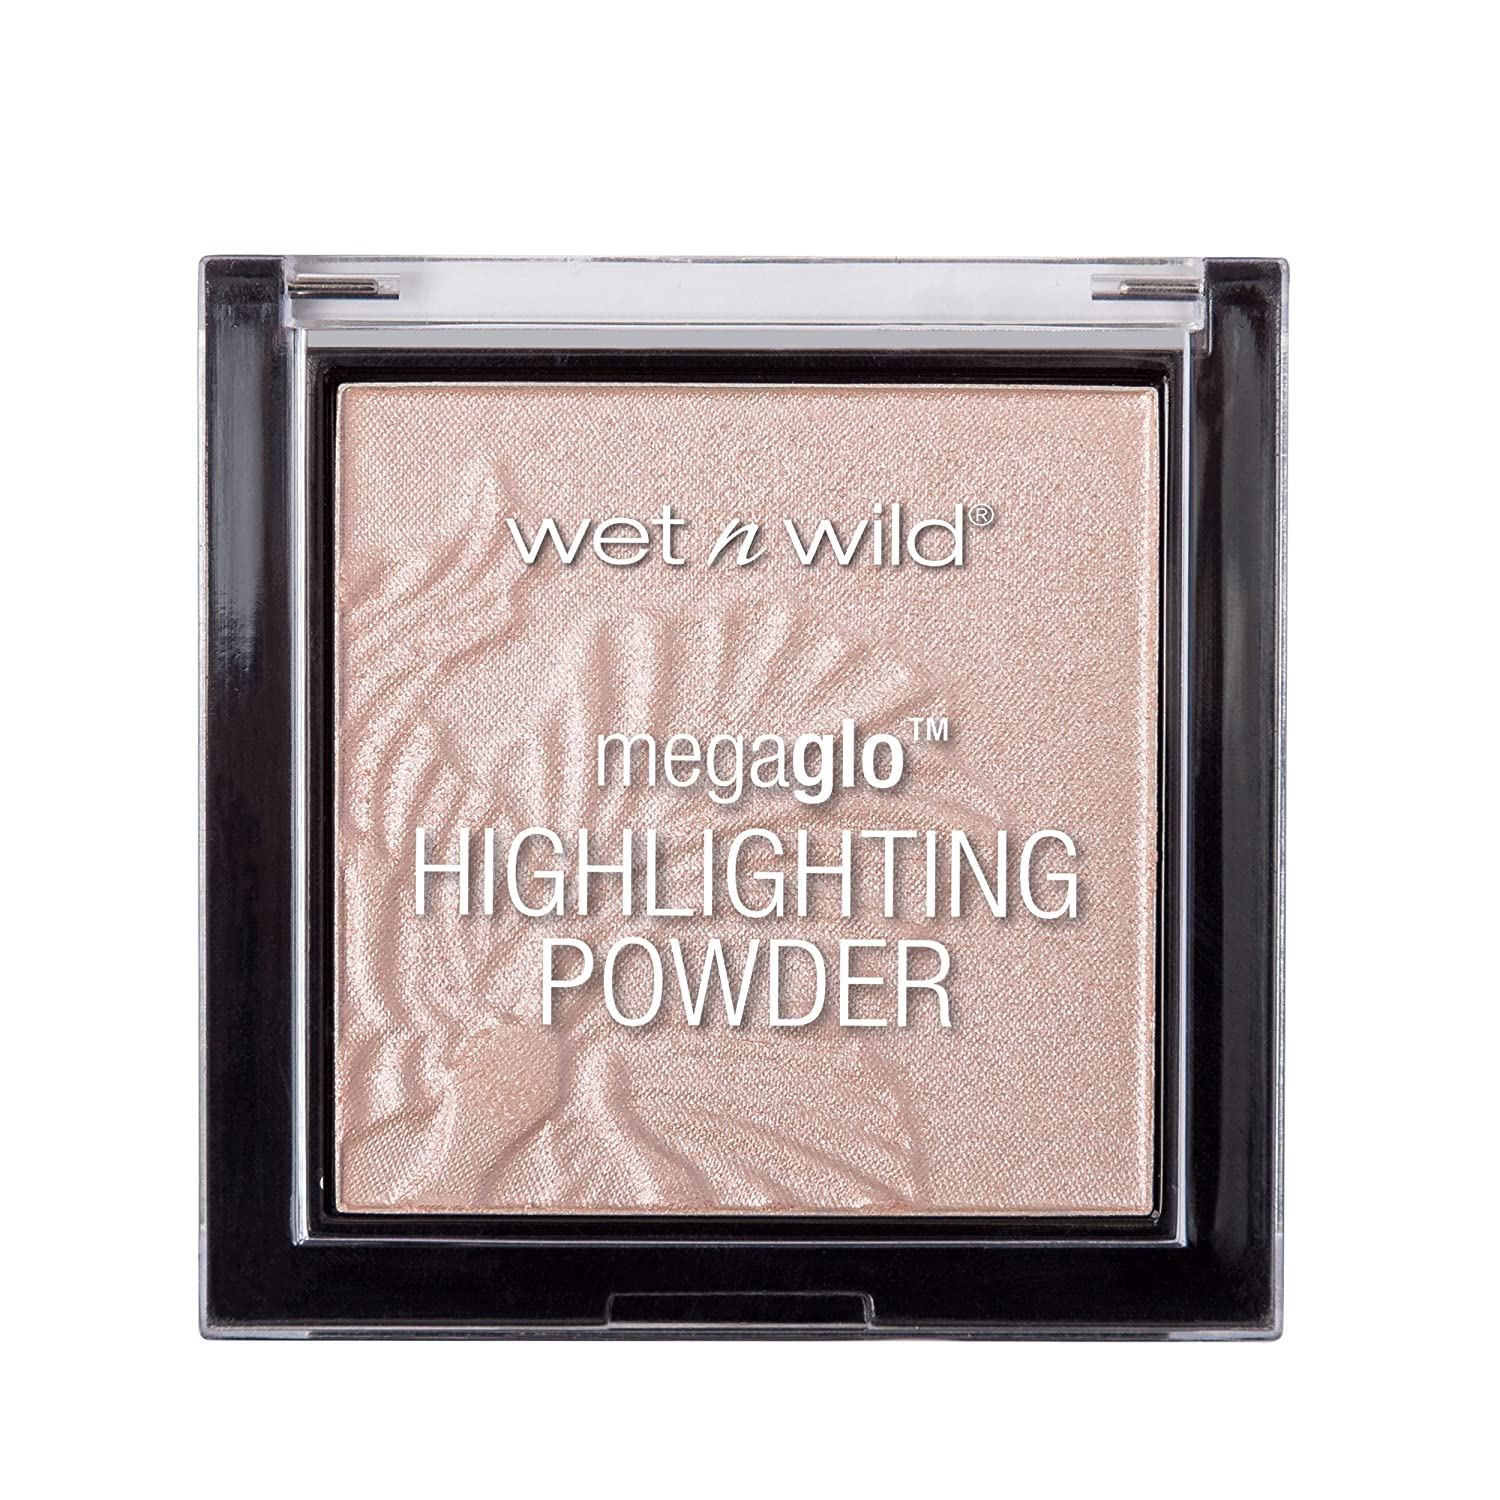 wet n wild Megaglo Highlighting Powder, Blossom Glow, 0.19 Fluid Ounce Markwins Beauty Products 319B